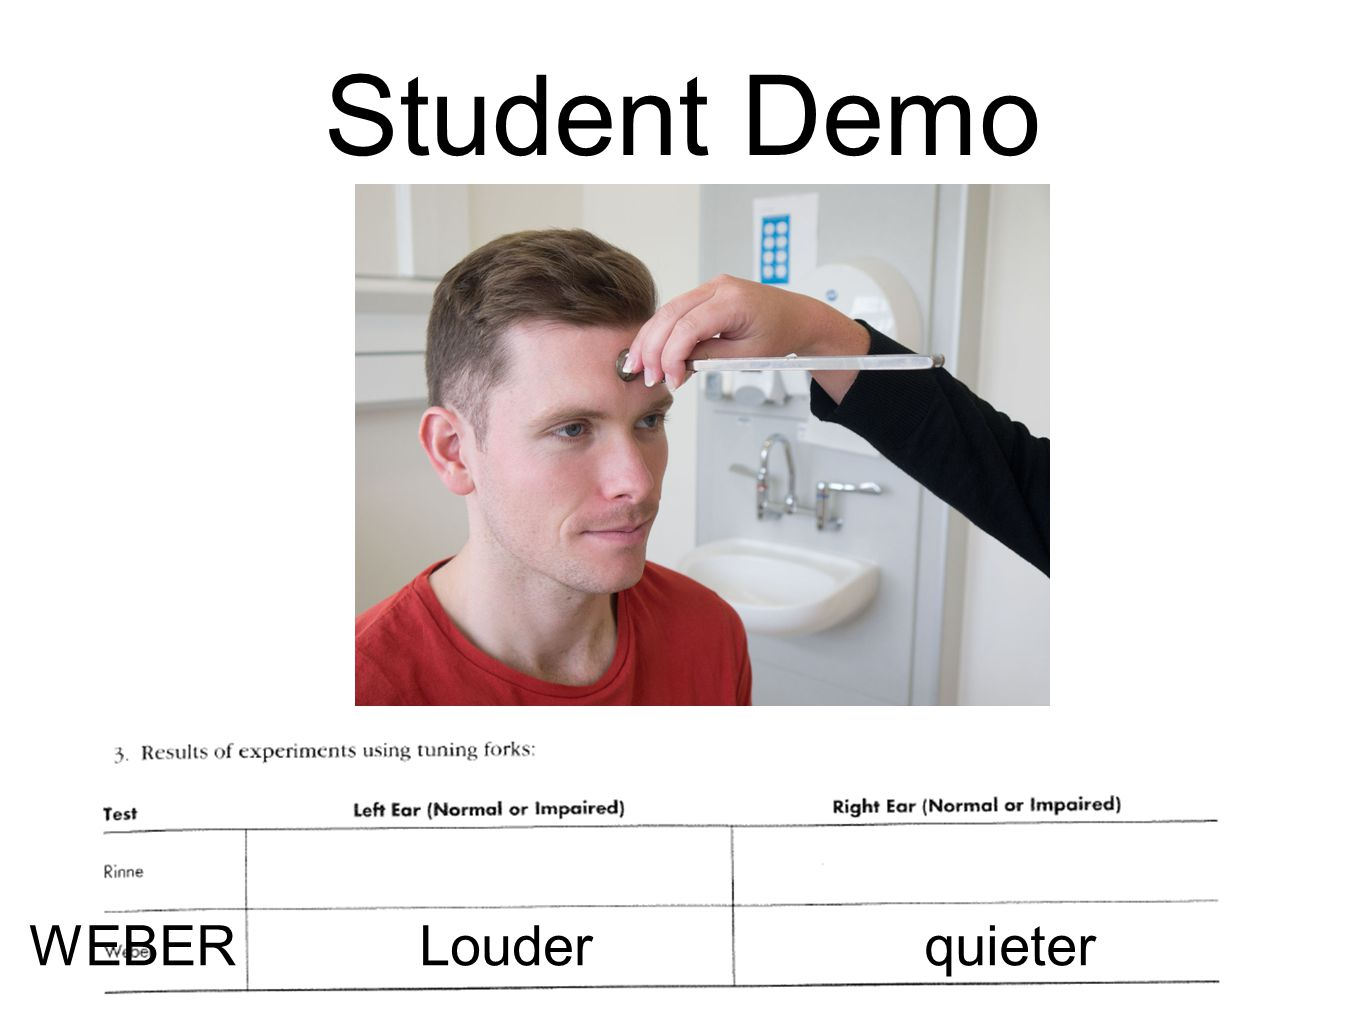 Student Demo WEBER Louder quieter